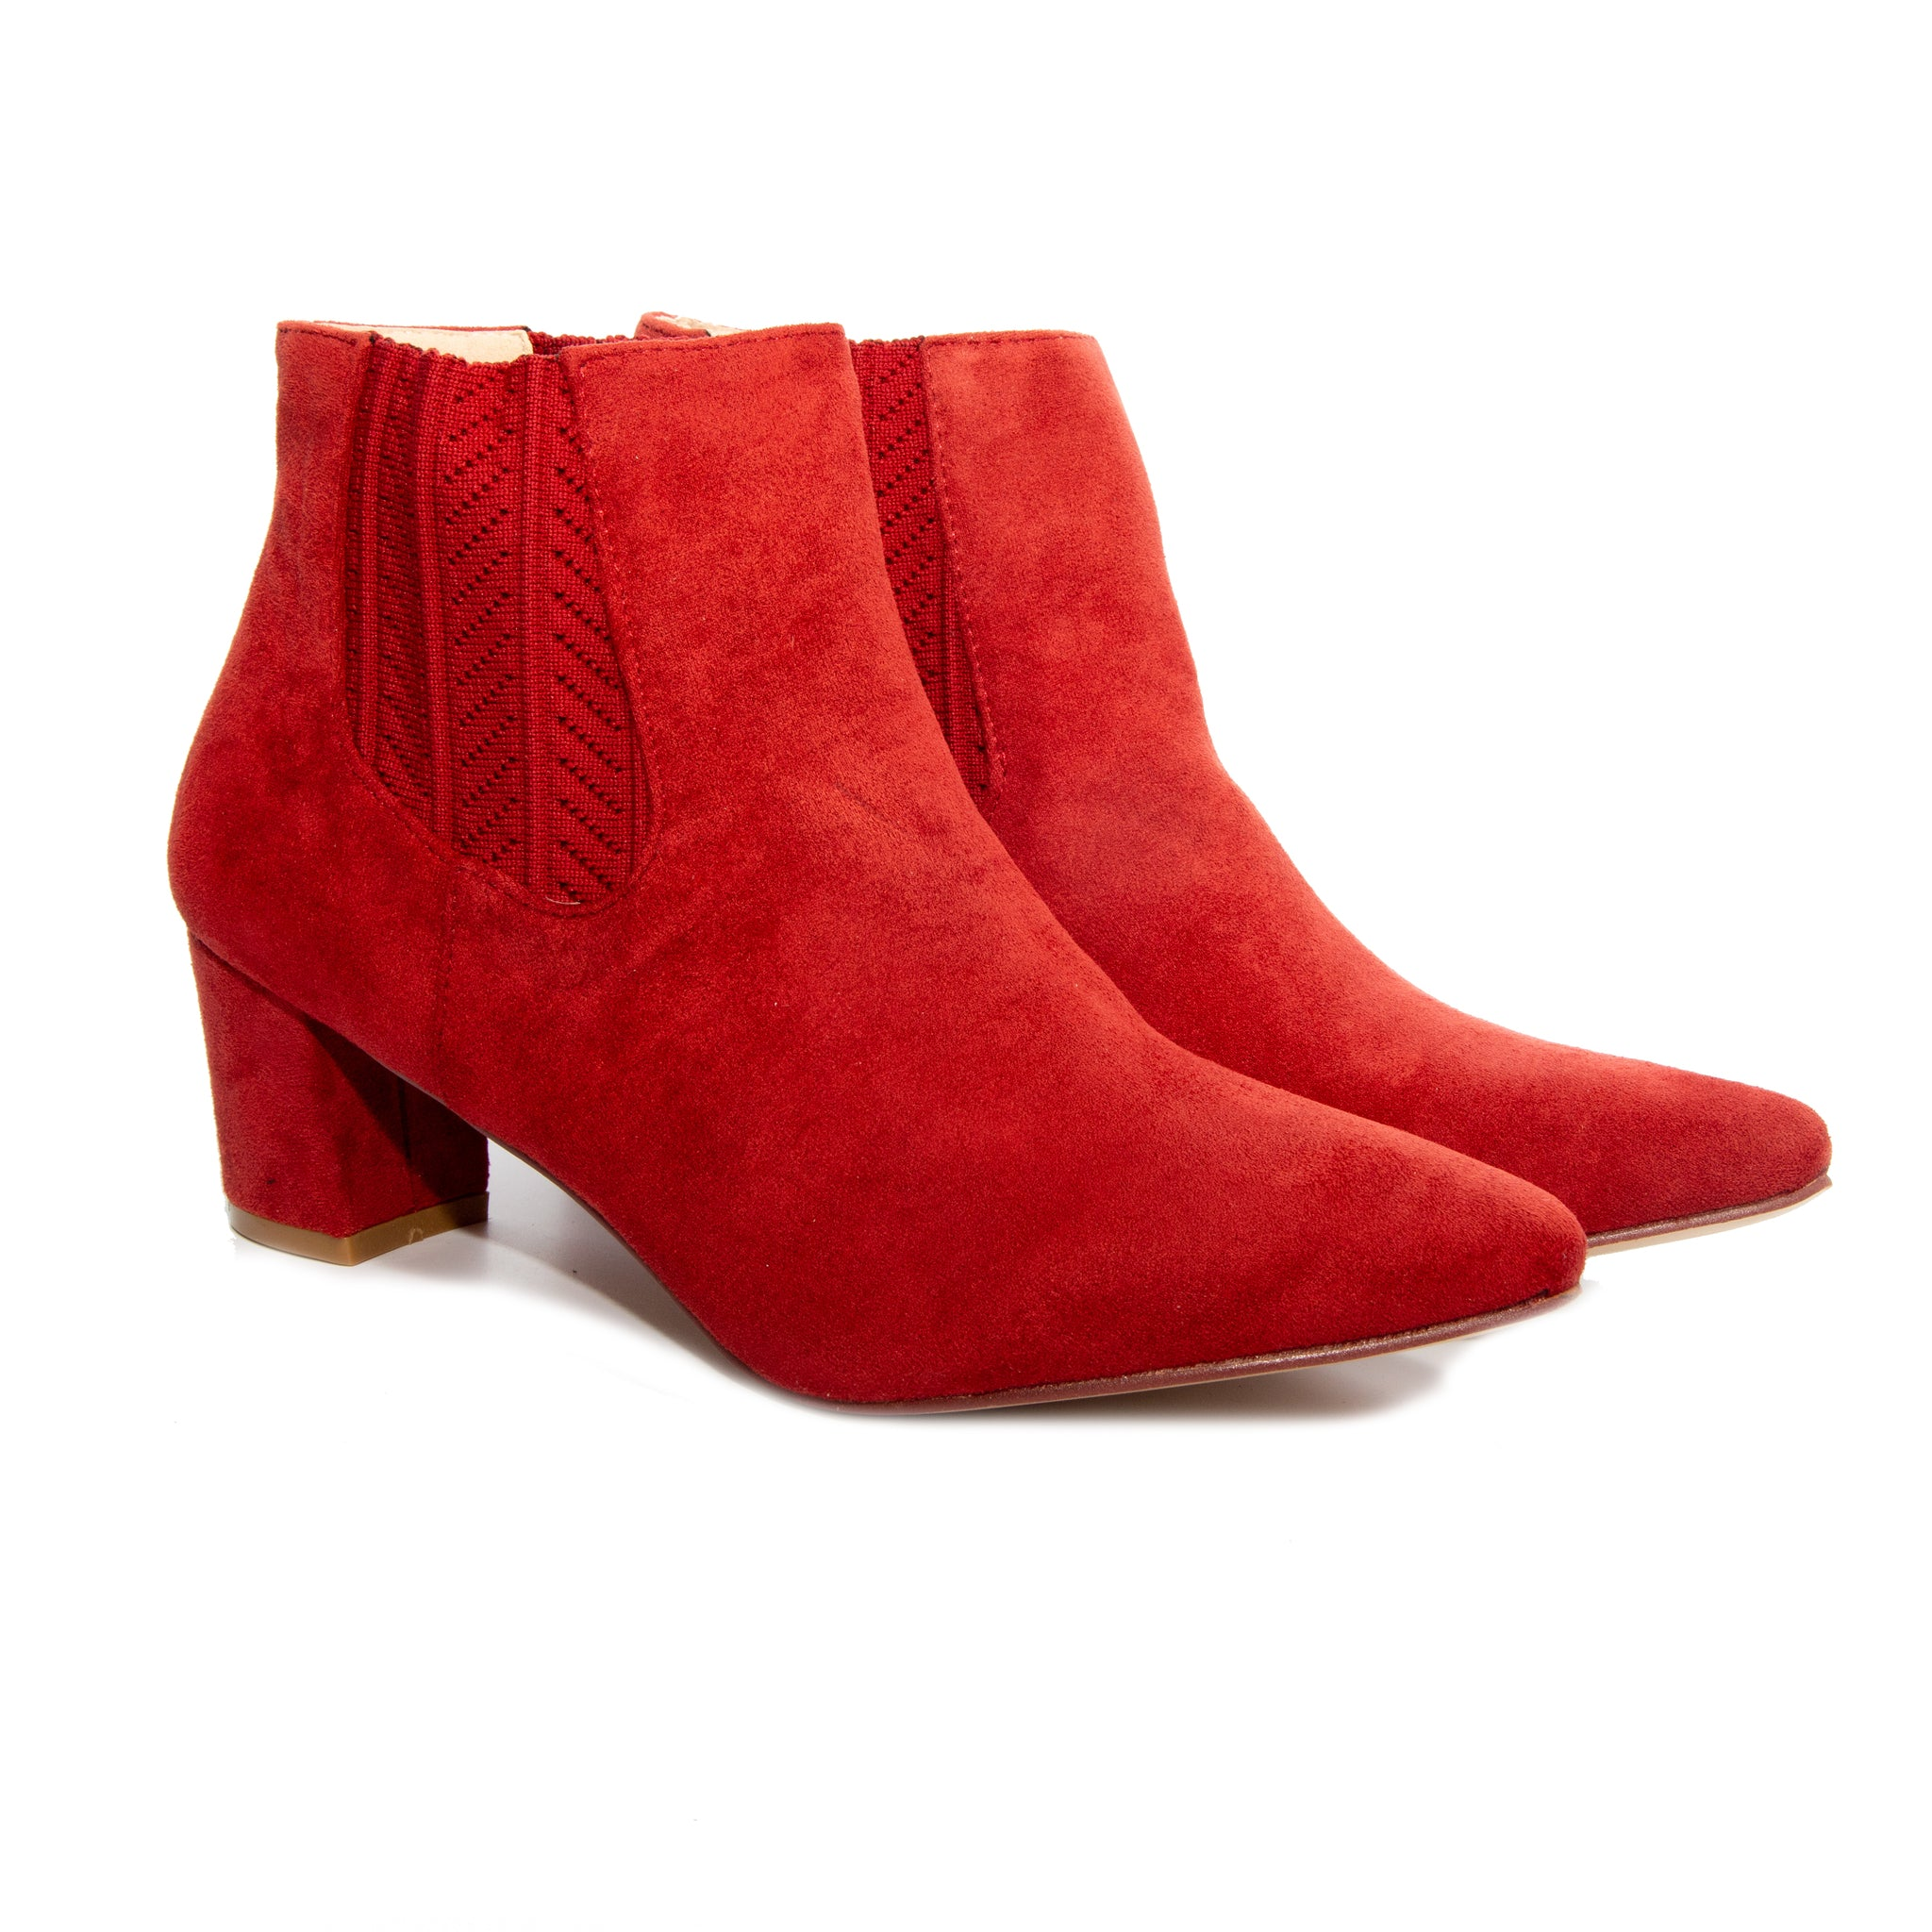 Chloe by Dolce Nome | Faux Suede Ankle Boots in Rust (pair view)